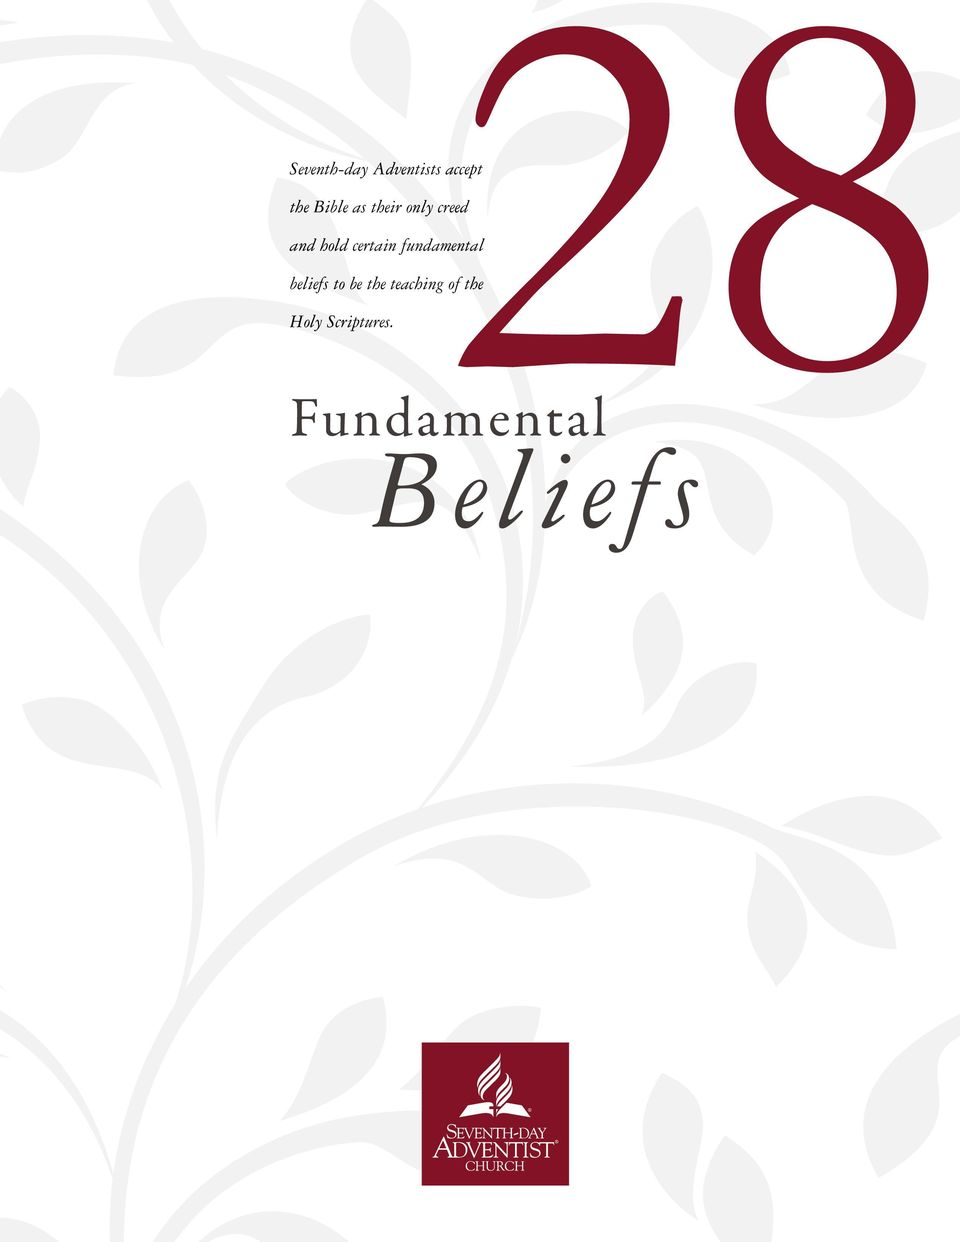 certain fundamental beliefs to be the